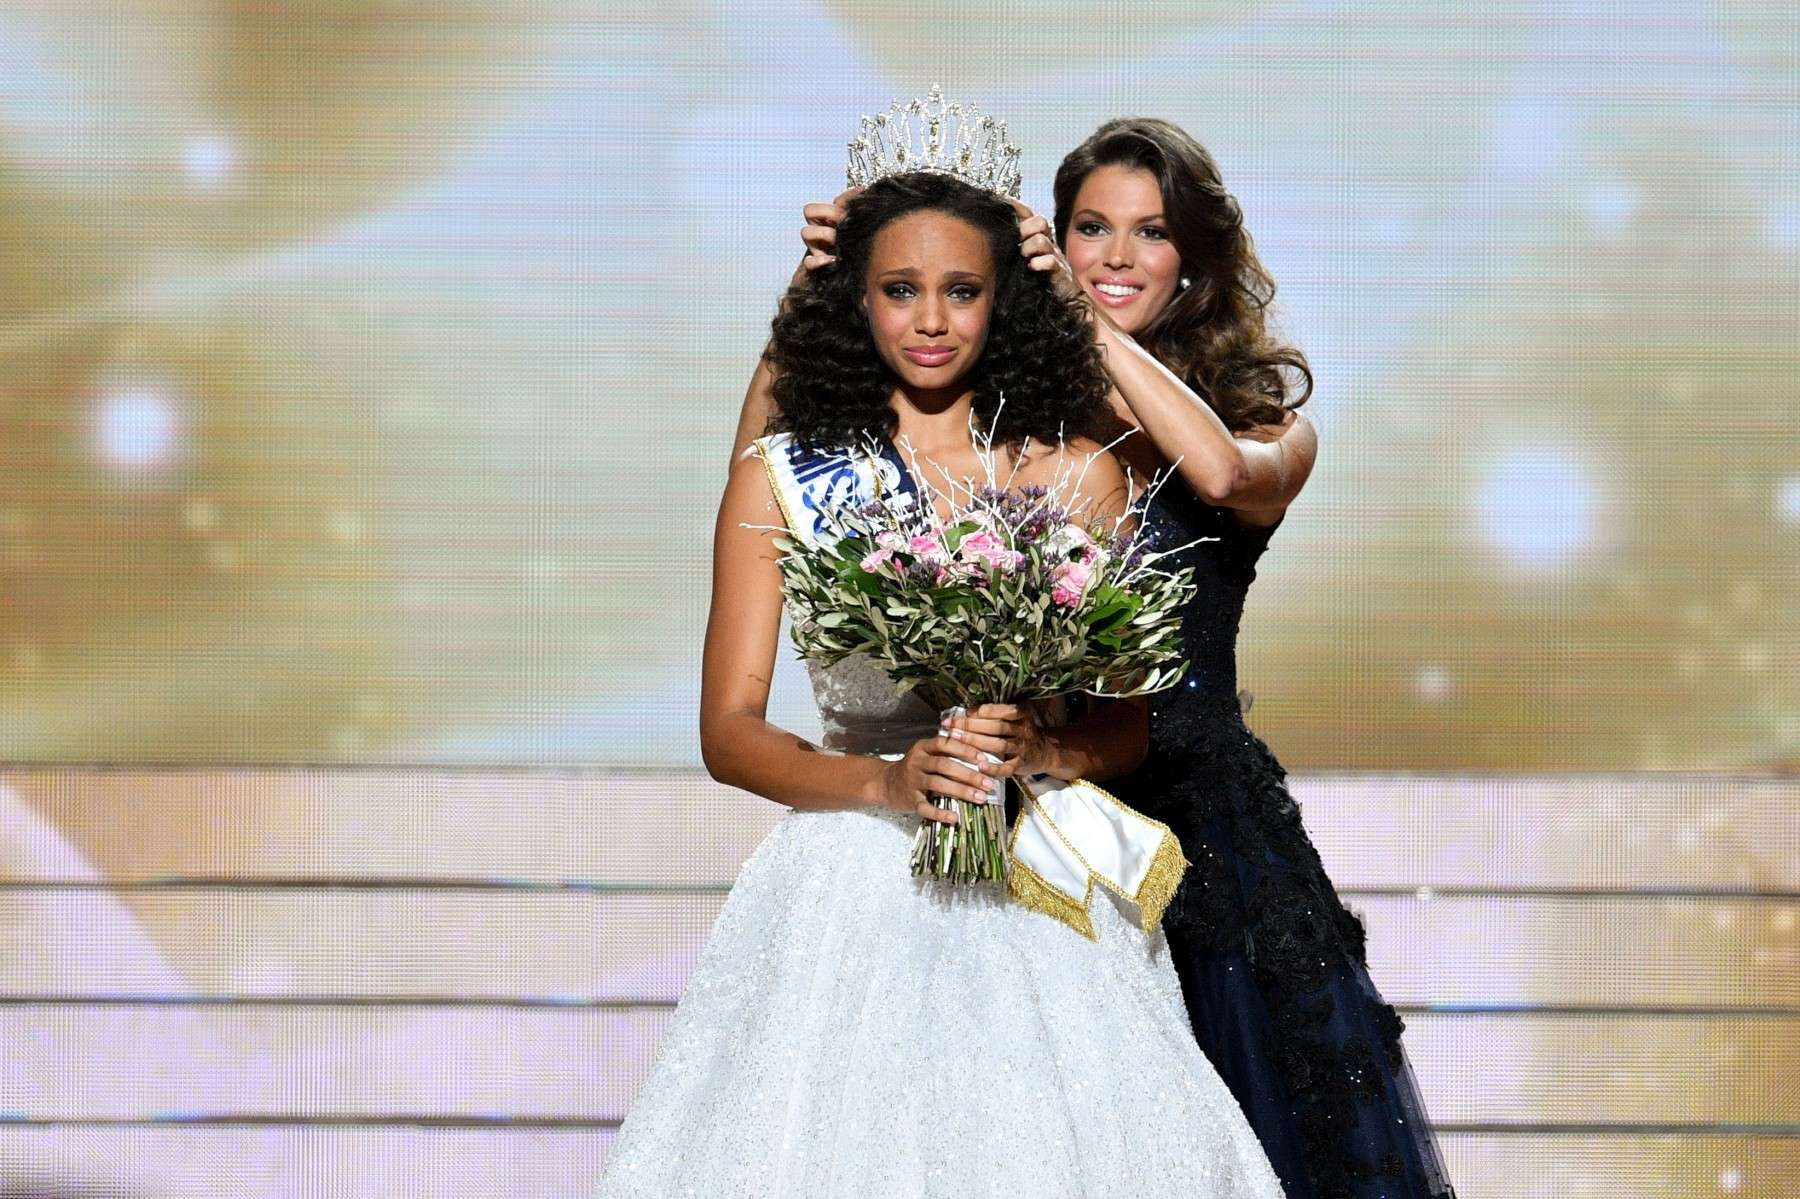 Alicia Aylies, Miss France 2017.